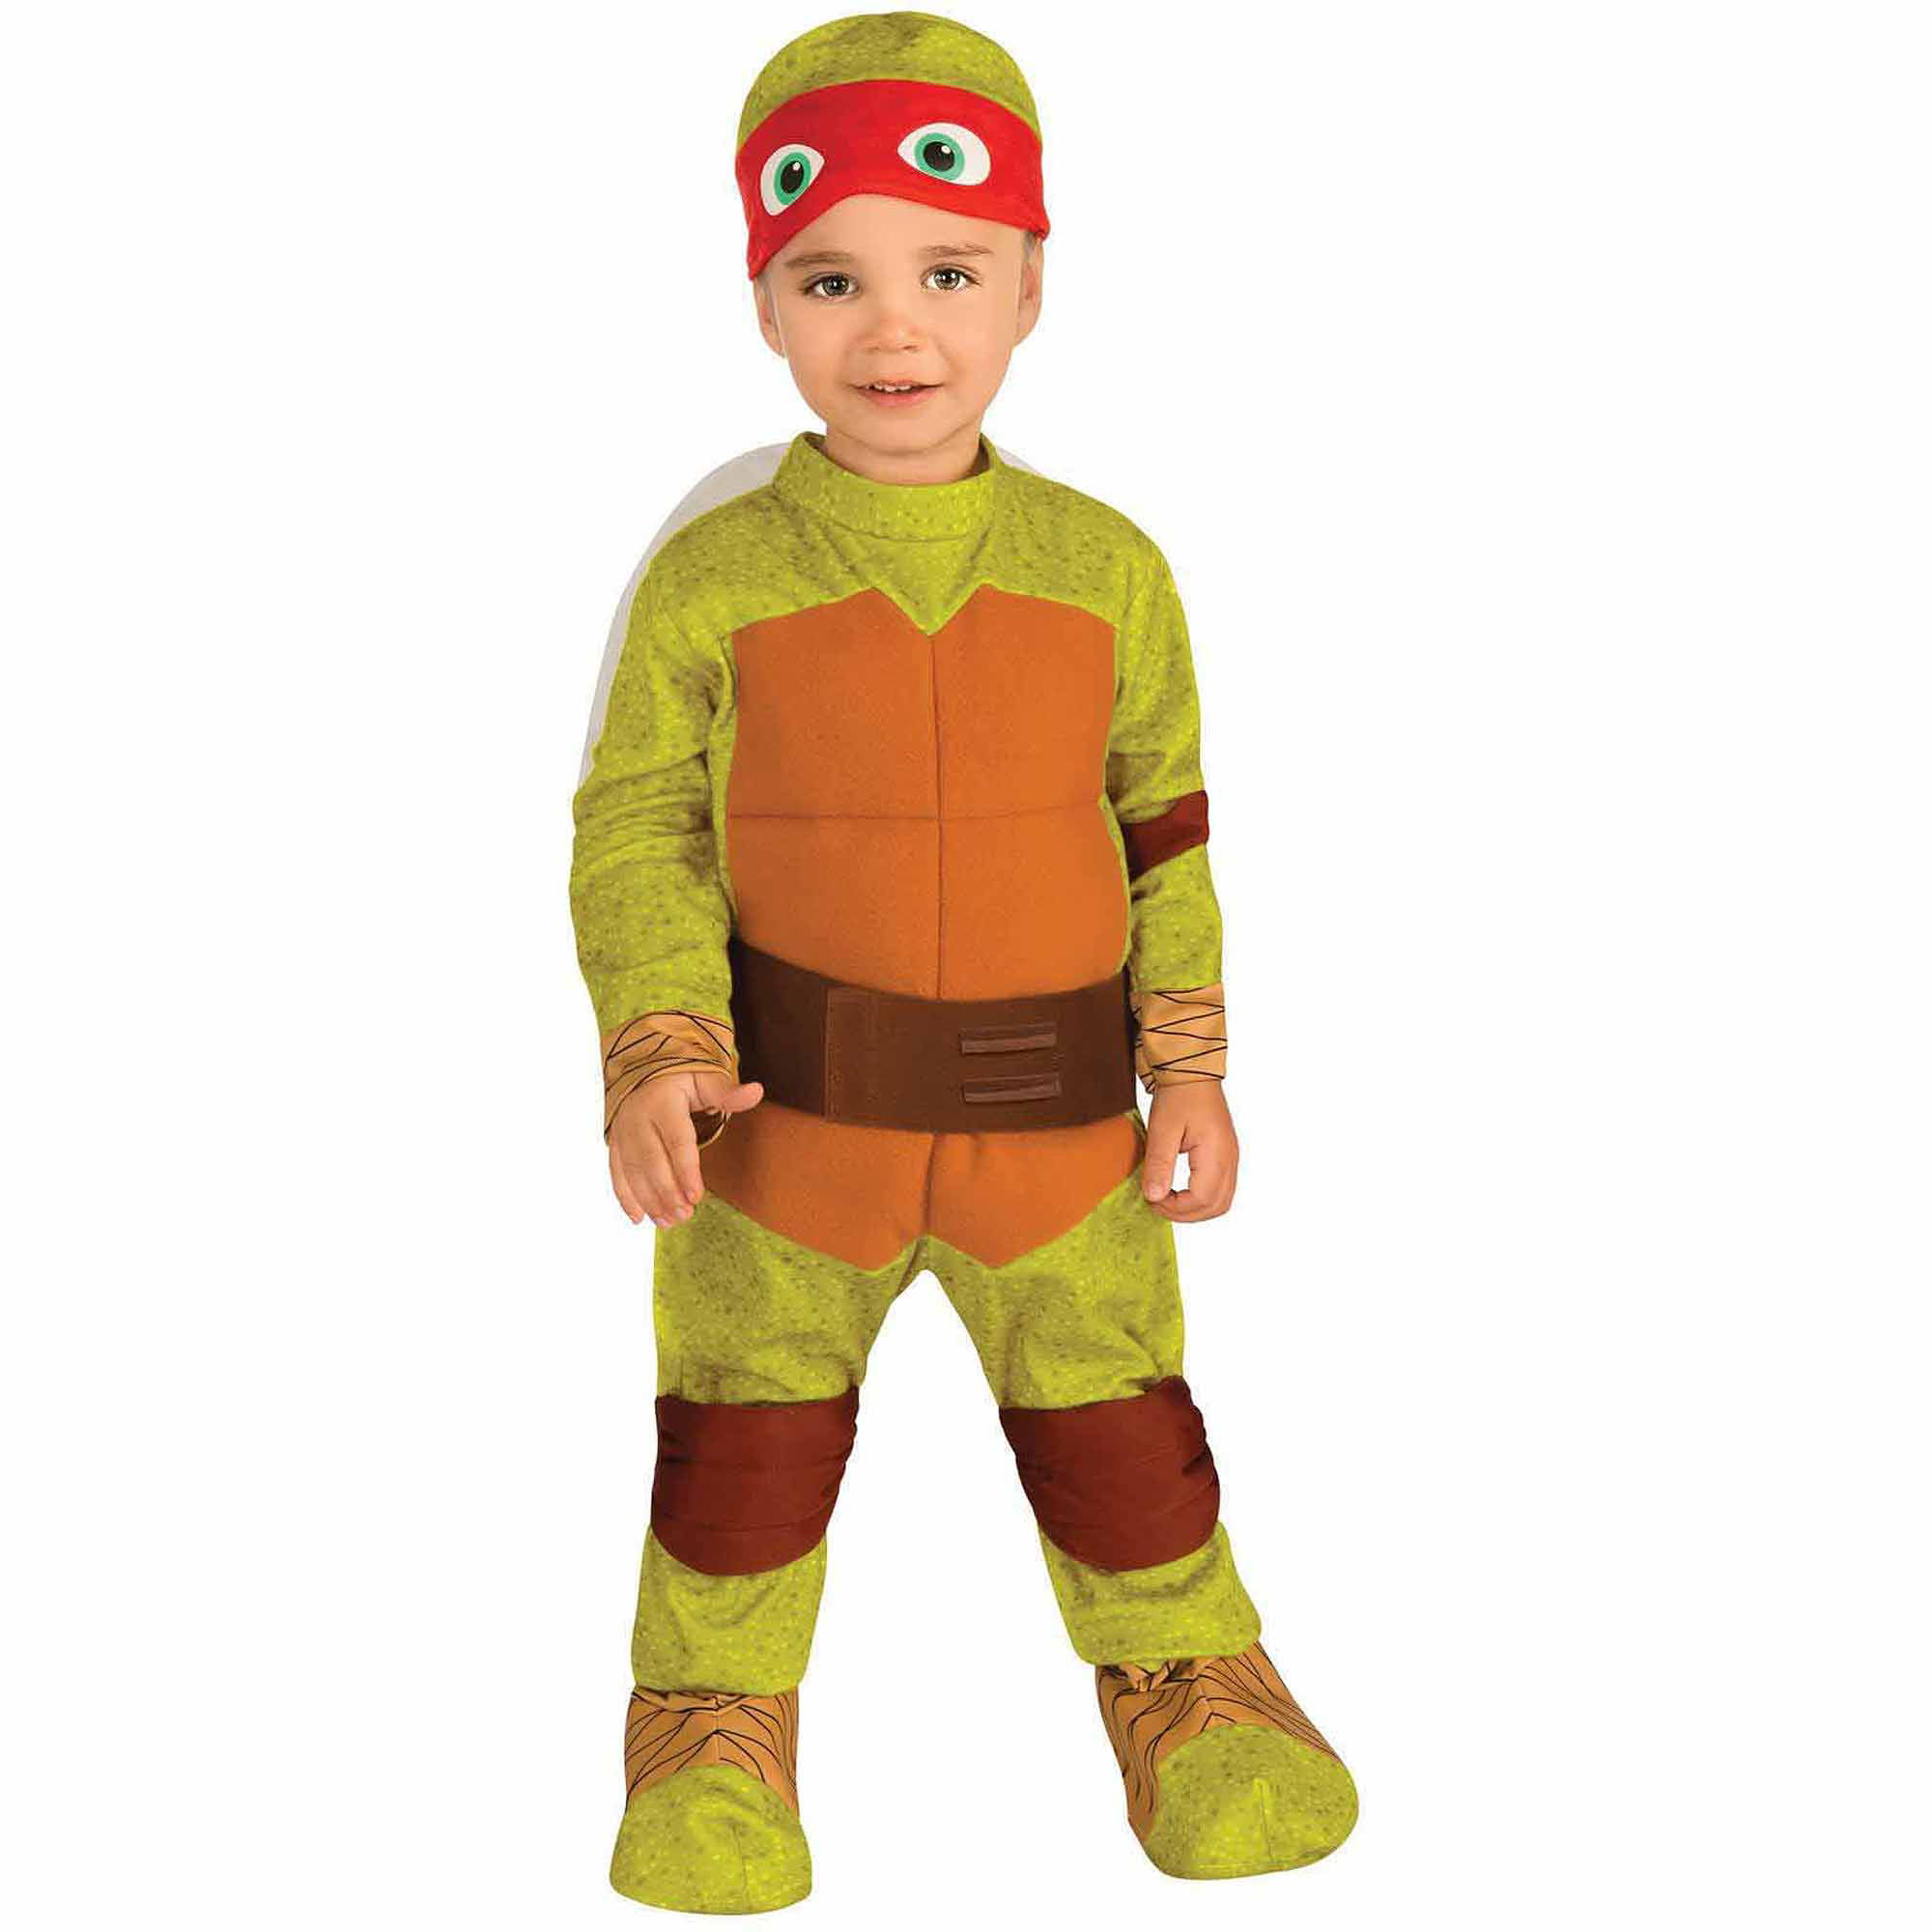 Teenage Mutant Ninja Turtles Raphael Toddler Halloween Costume Size 3T-4T - Walmart.com  sc 1 st  Walmart.com & Teenage Mutant Ninja Turtles Raphael Toddler Halloween Costume Size ...